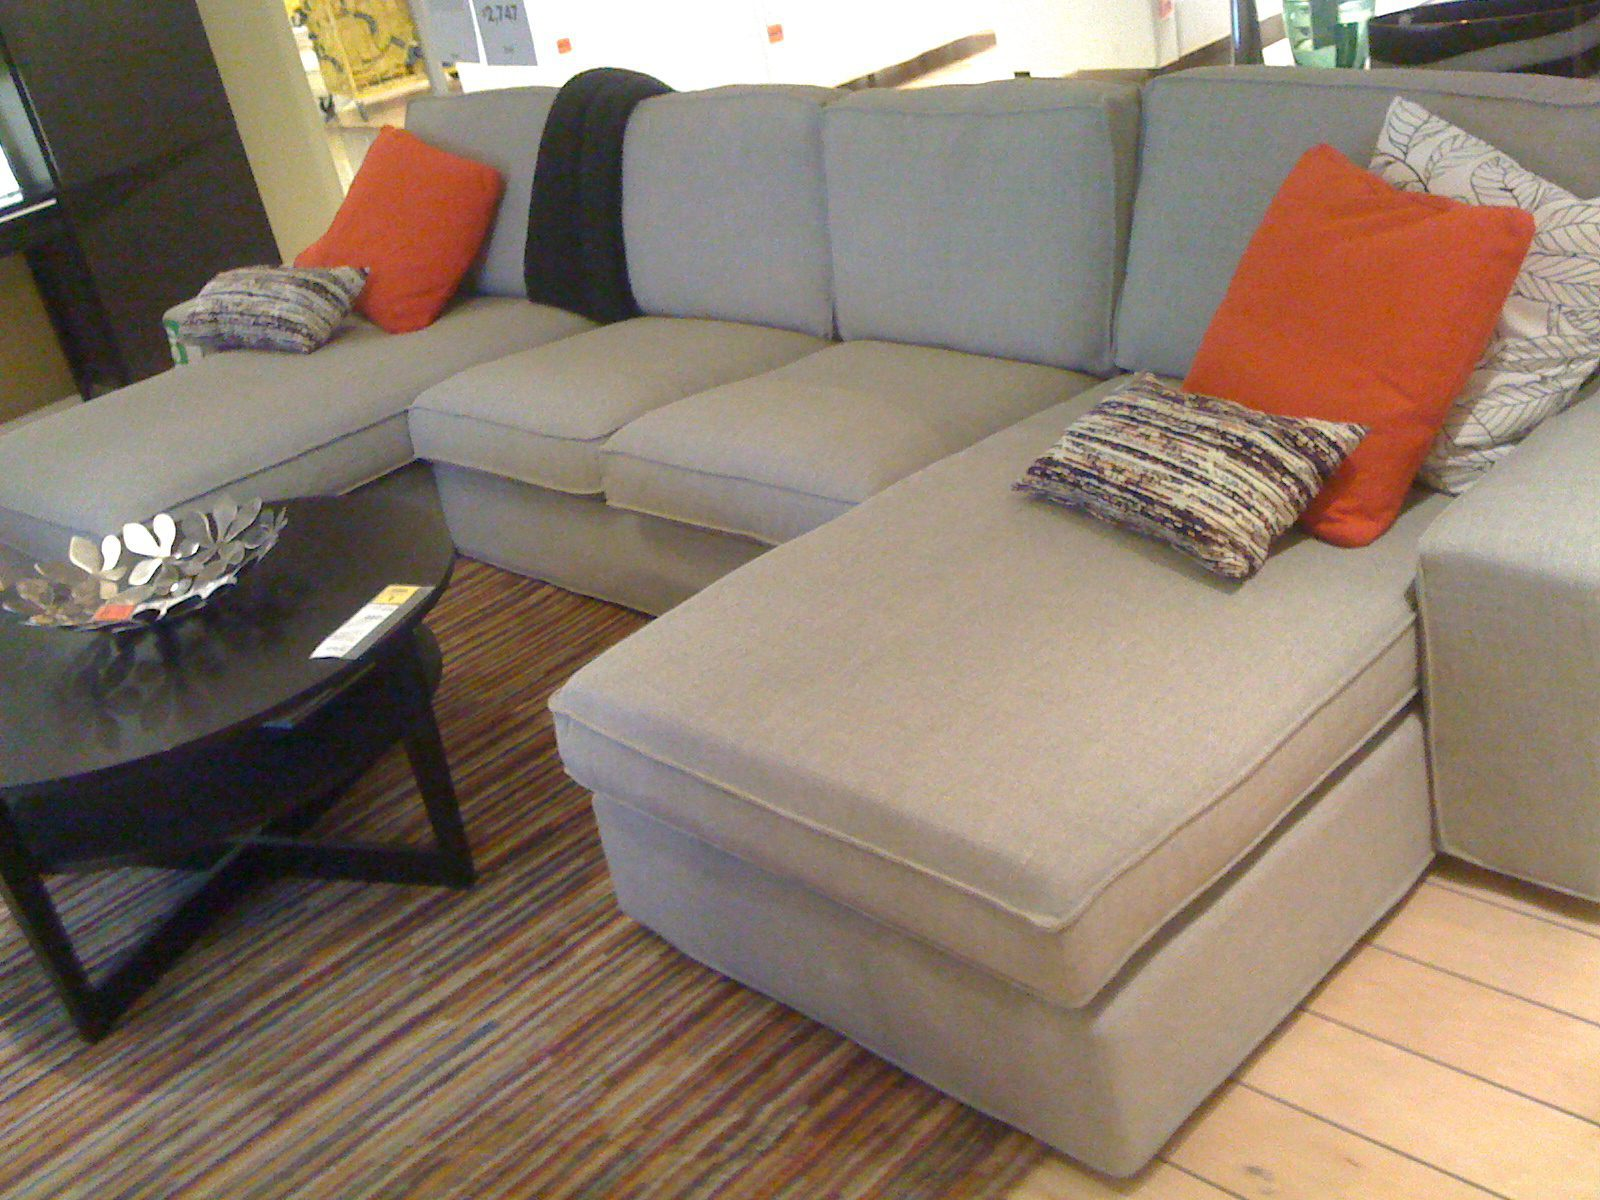 Ikea Kivik Sofa Recamiere Ikea Presents New Kivik Sofa Range Comfort Works Blog